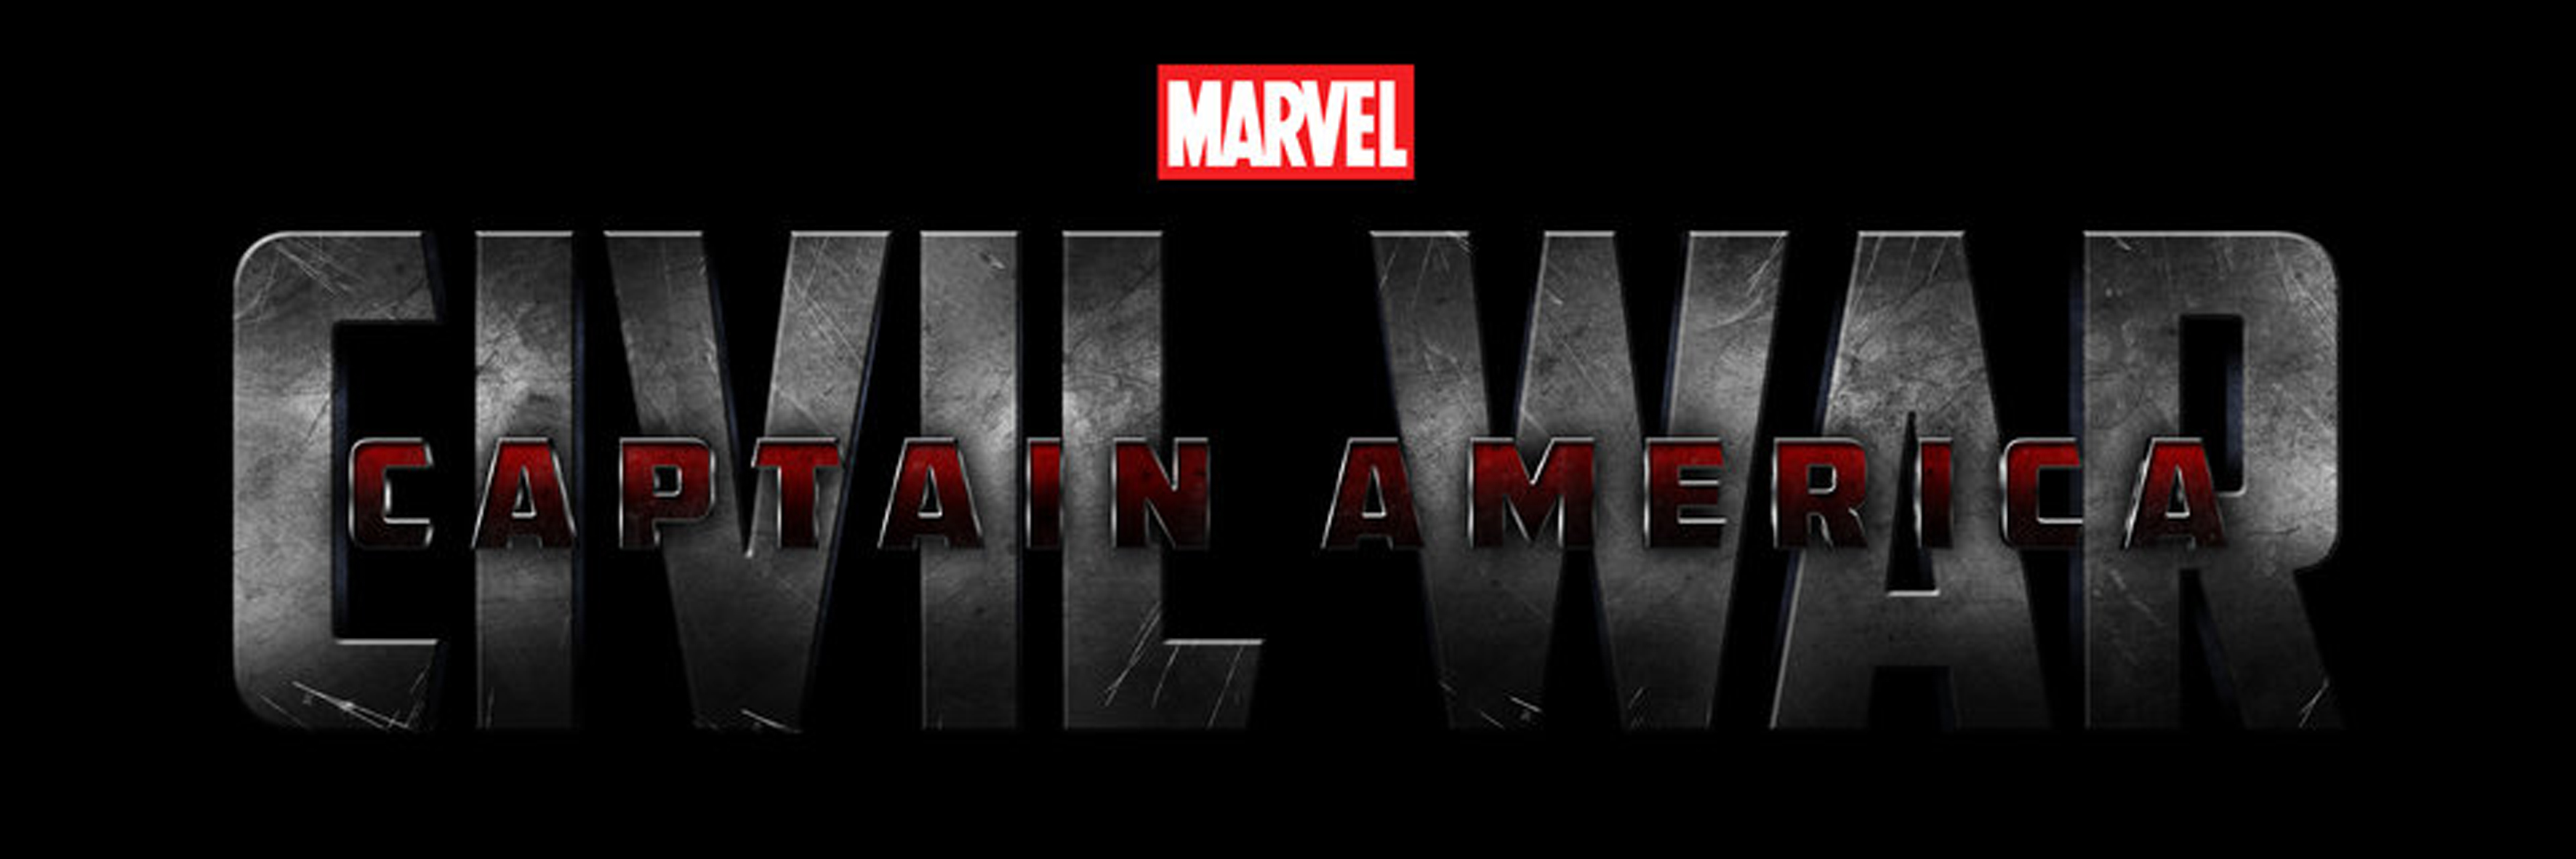 Captain America Civil War Background image